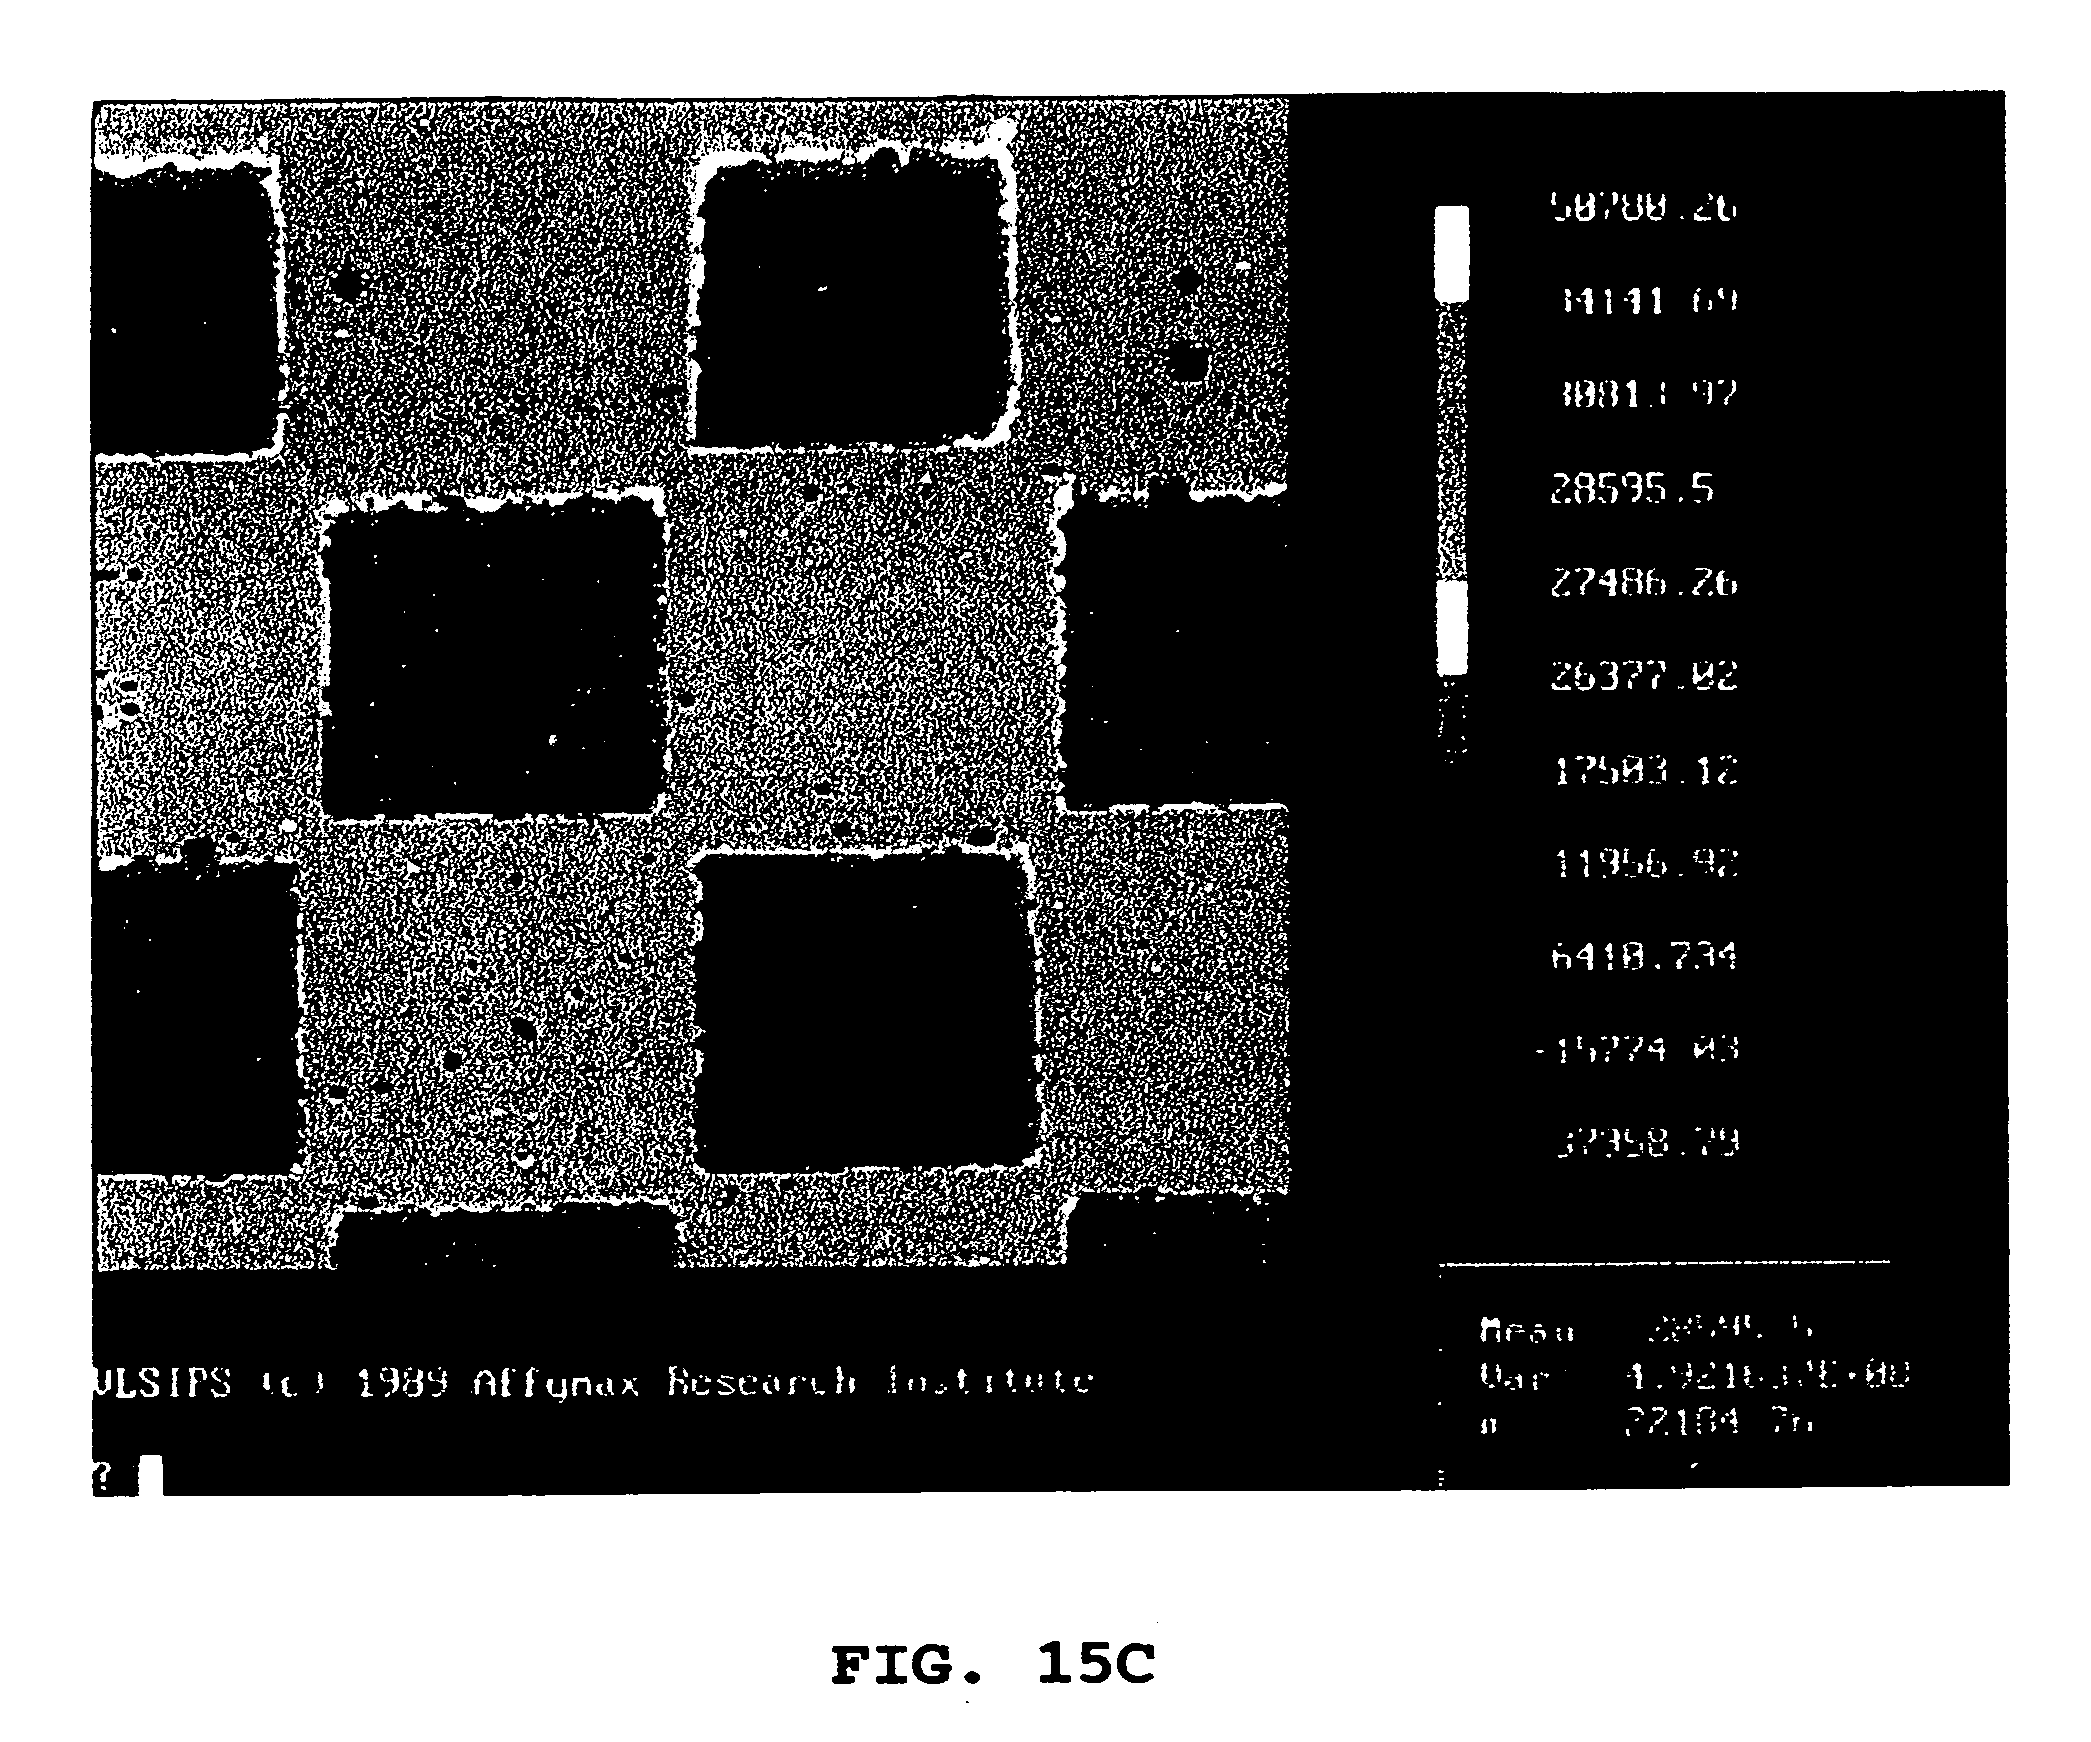 Us20050148027a1 Very Large Scale Immobilized Polymer